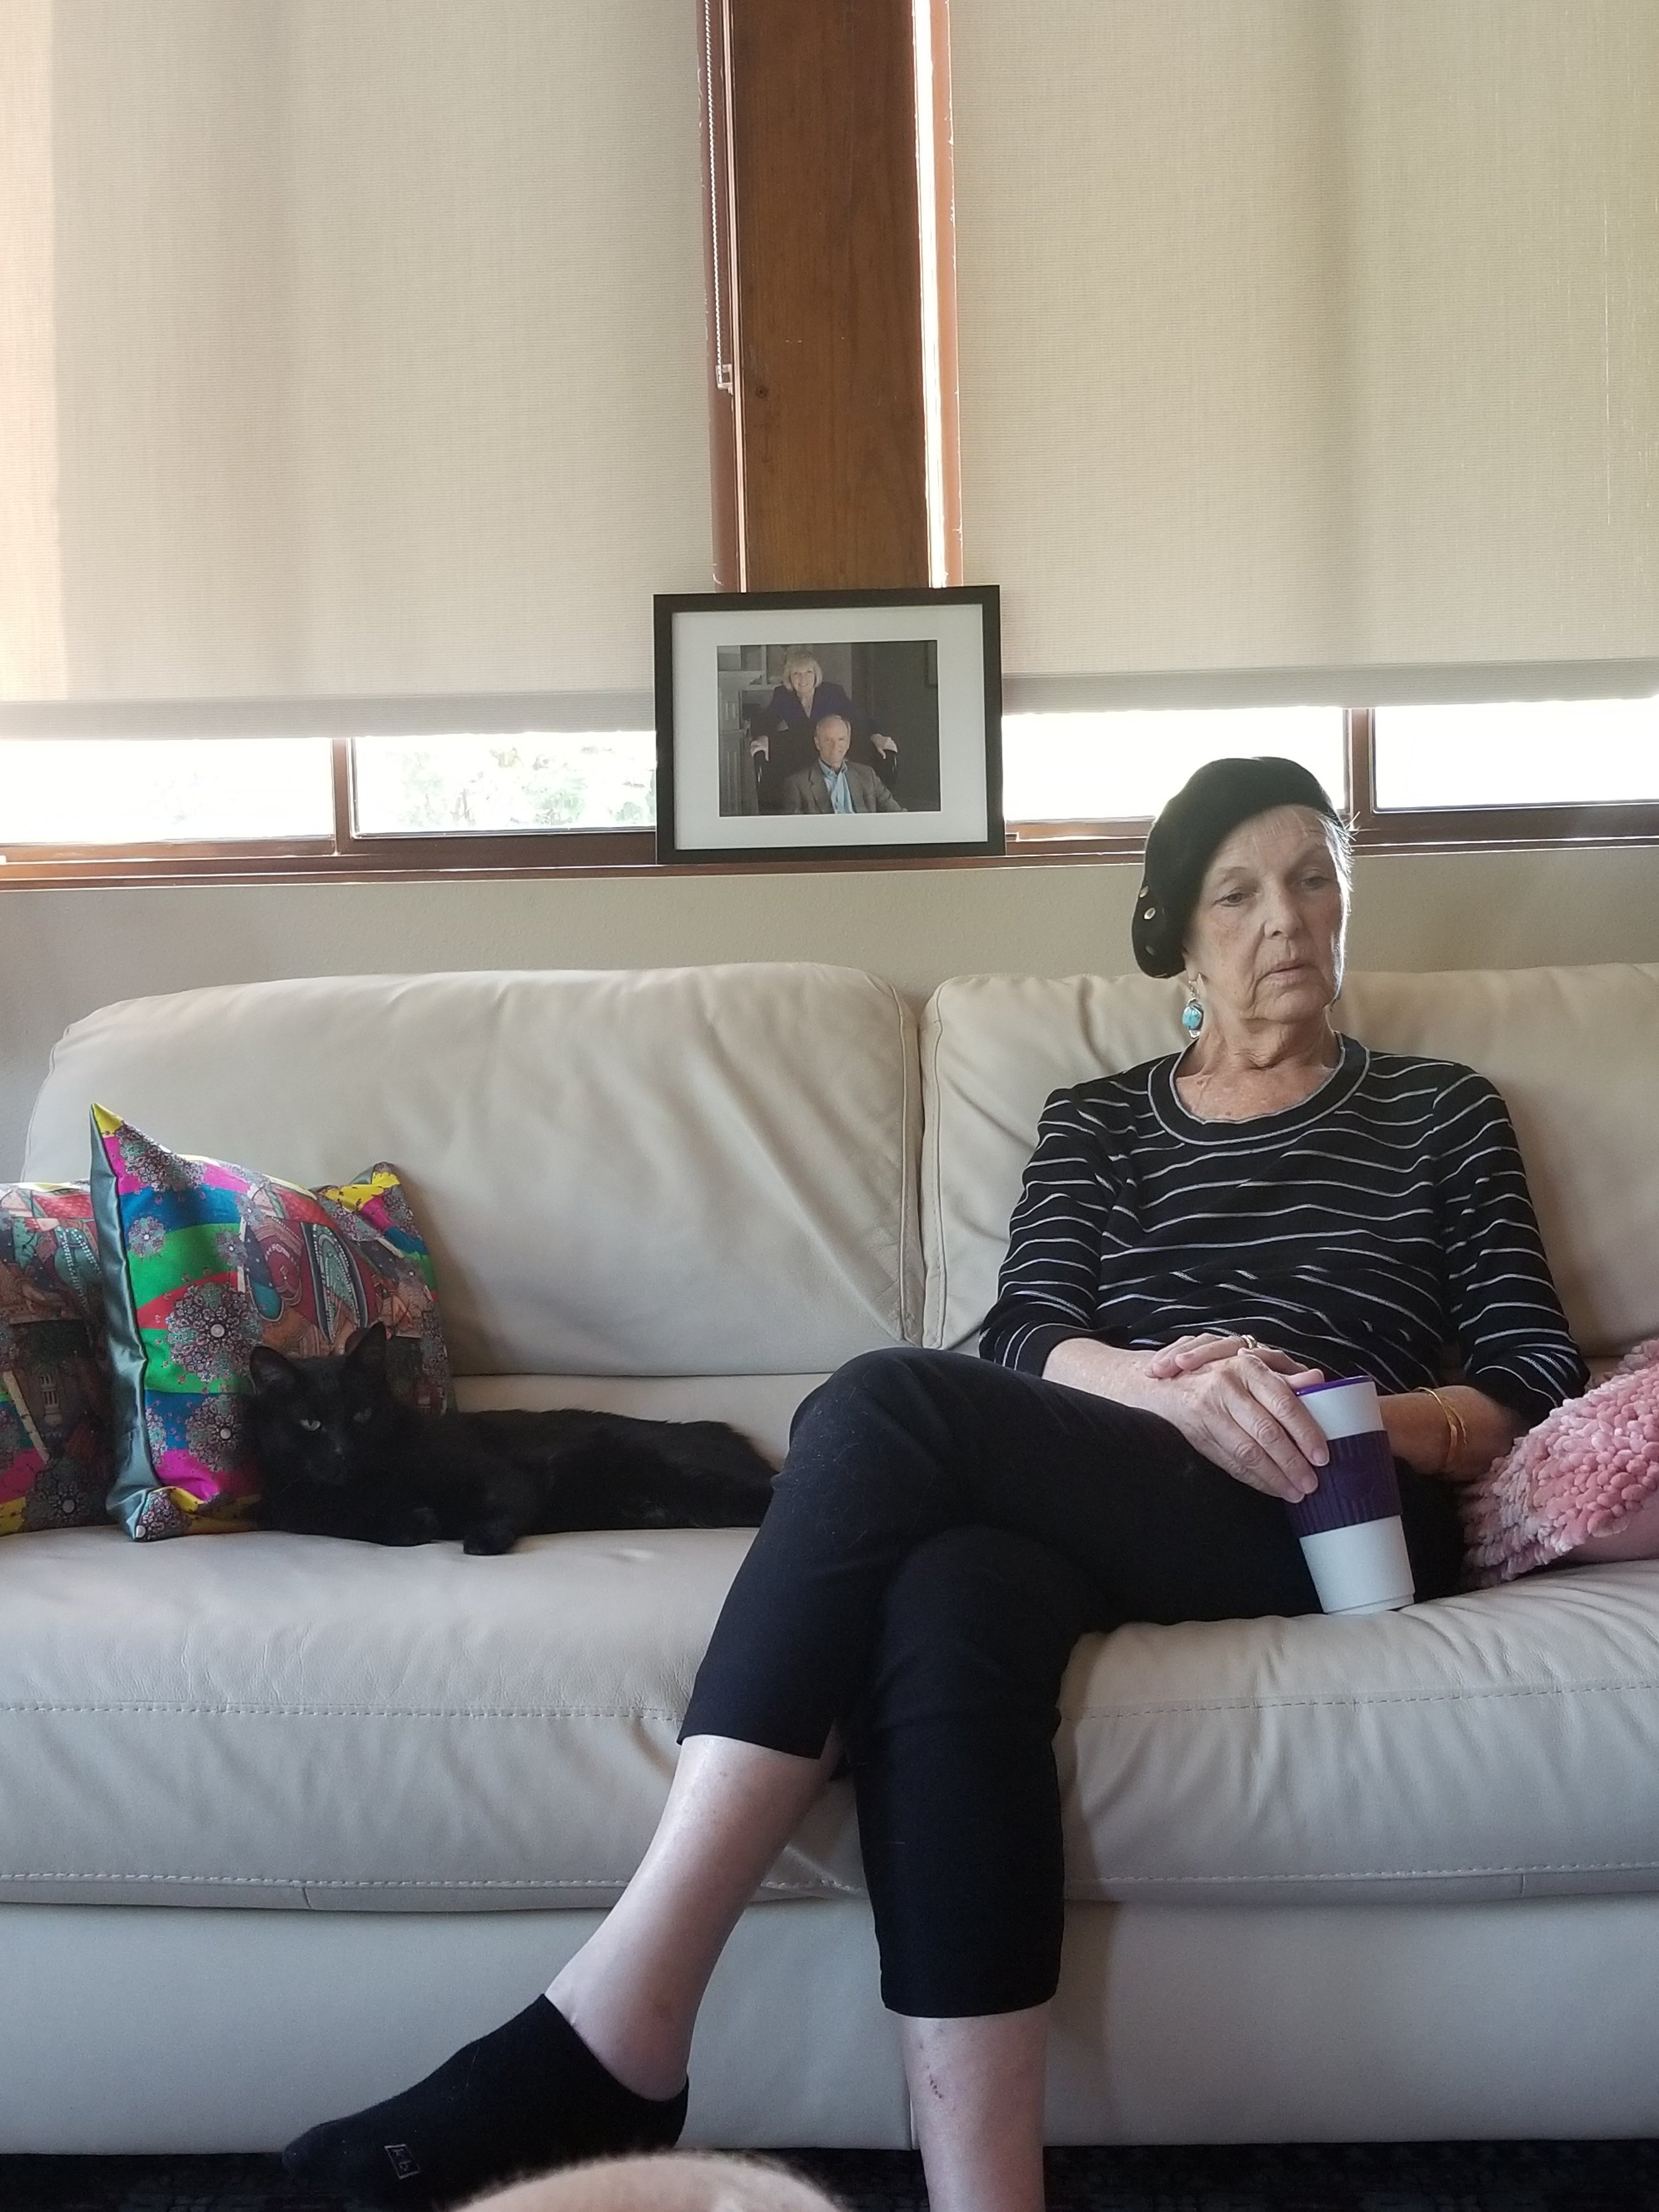 Reflection - I think of this photo as my mom reflecting upon what the past four months brought